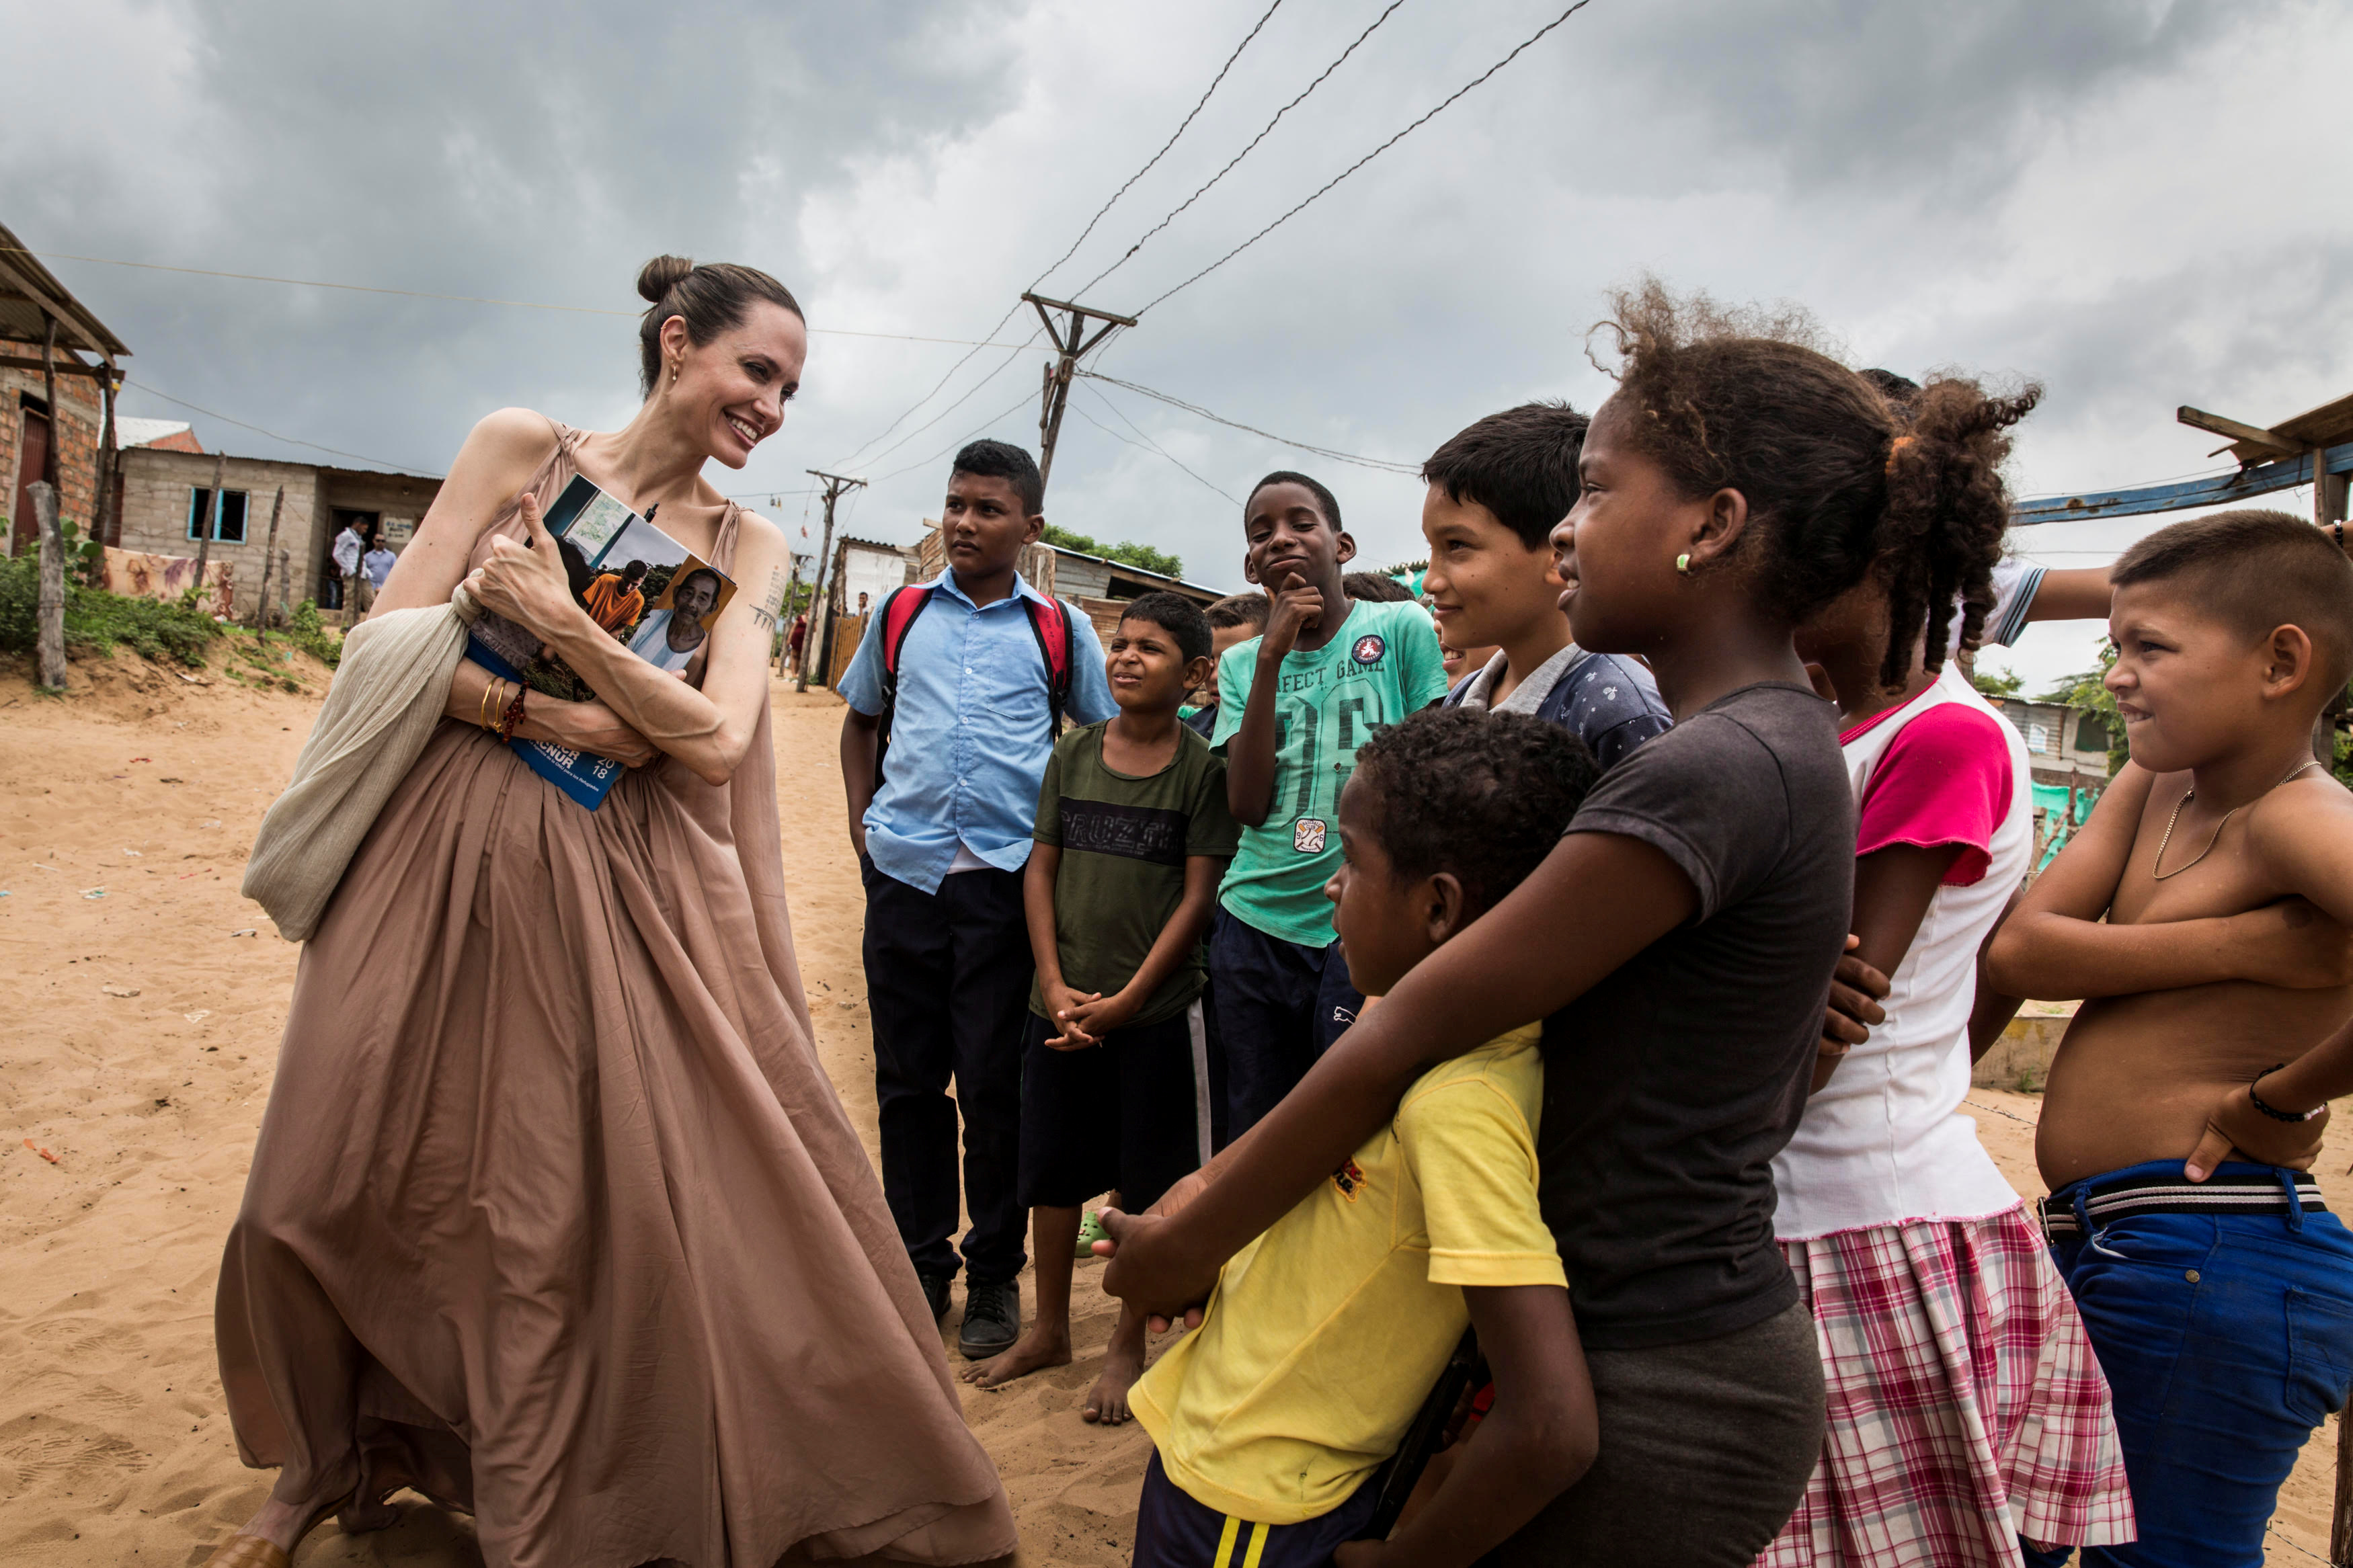 Special envoy for the United Nations High Commissioner for Refugees Angelina Jolie speaks to people in Riohacha, Colombia June 7, 2019. Picture taken June 7, 2019. Courtesy of UNHCR/Andrew McConnell/Handout via REUTERS